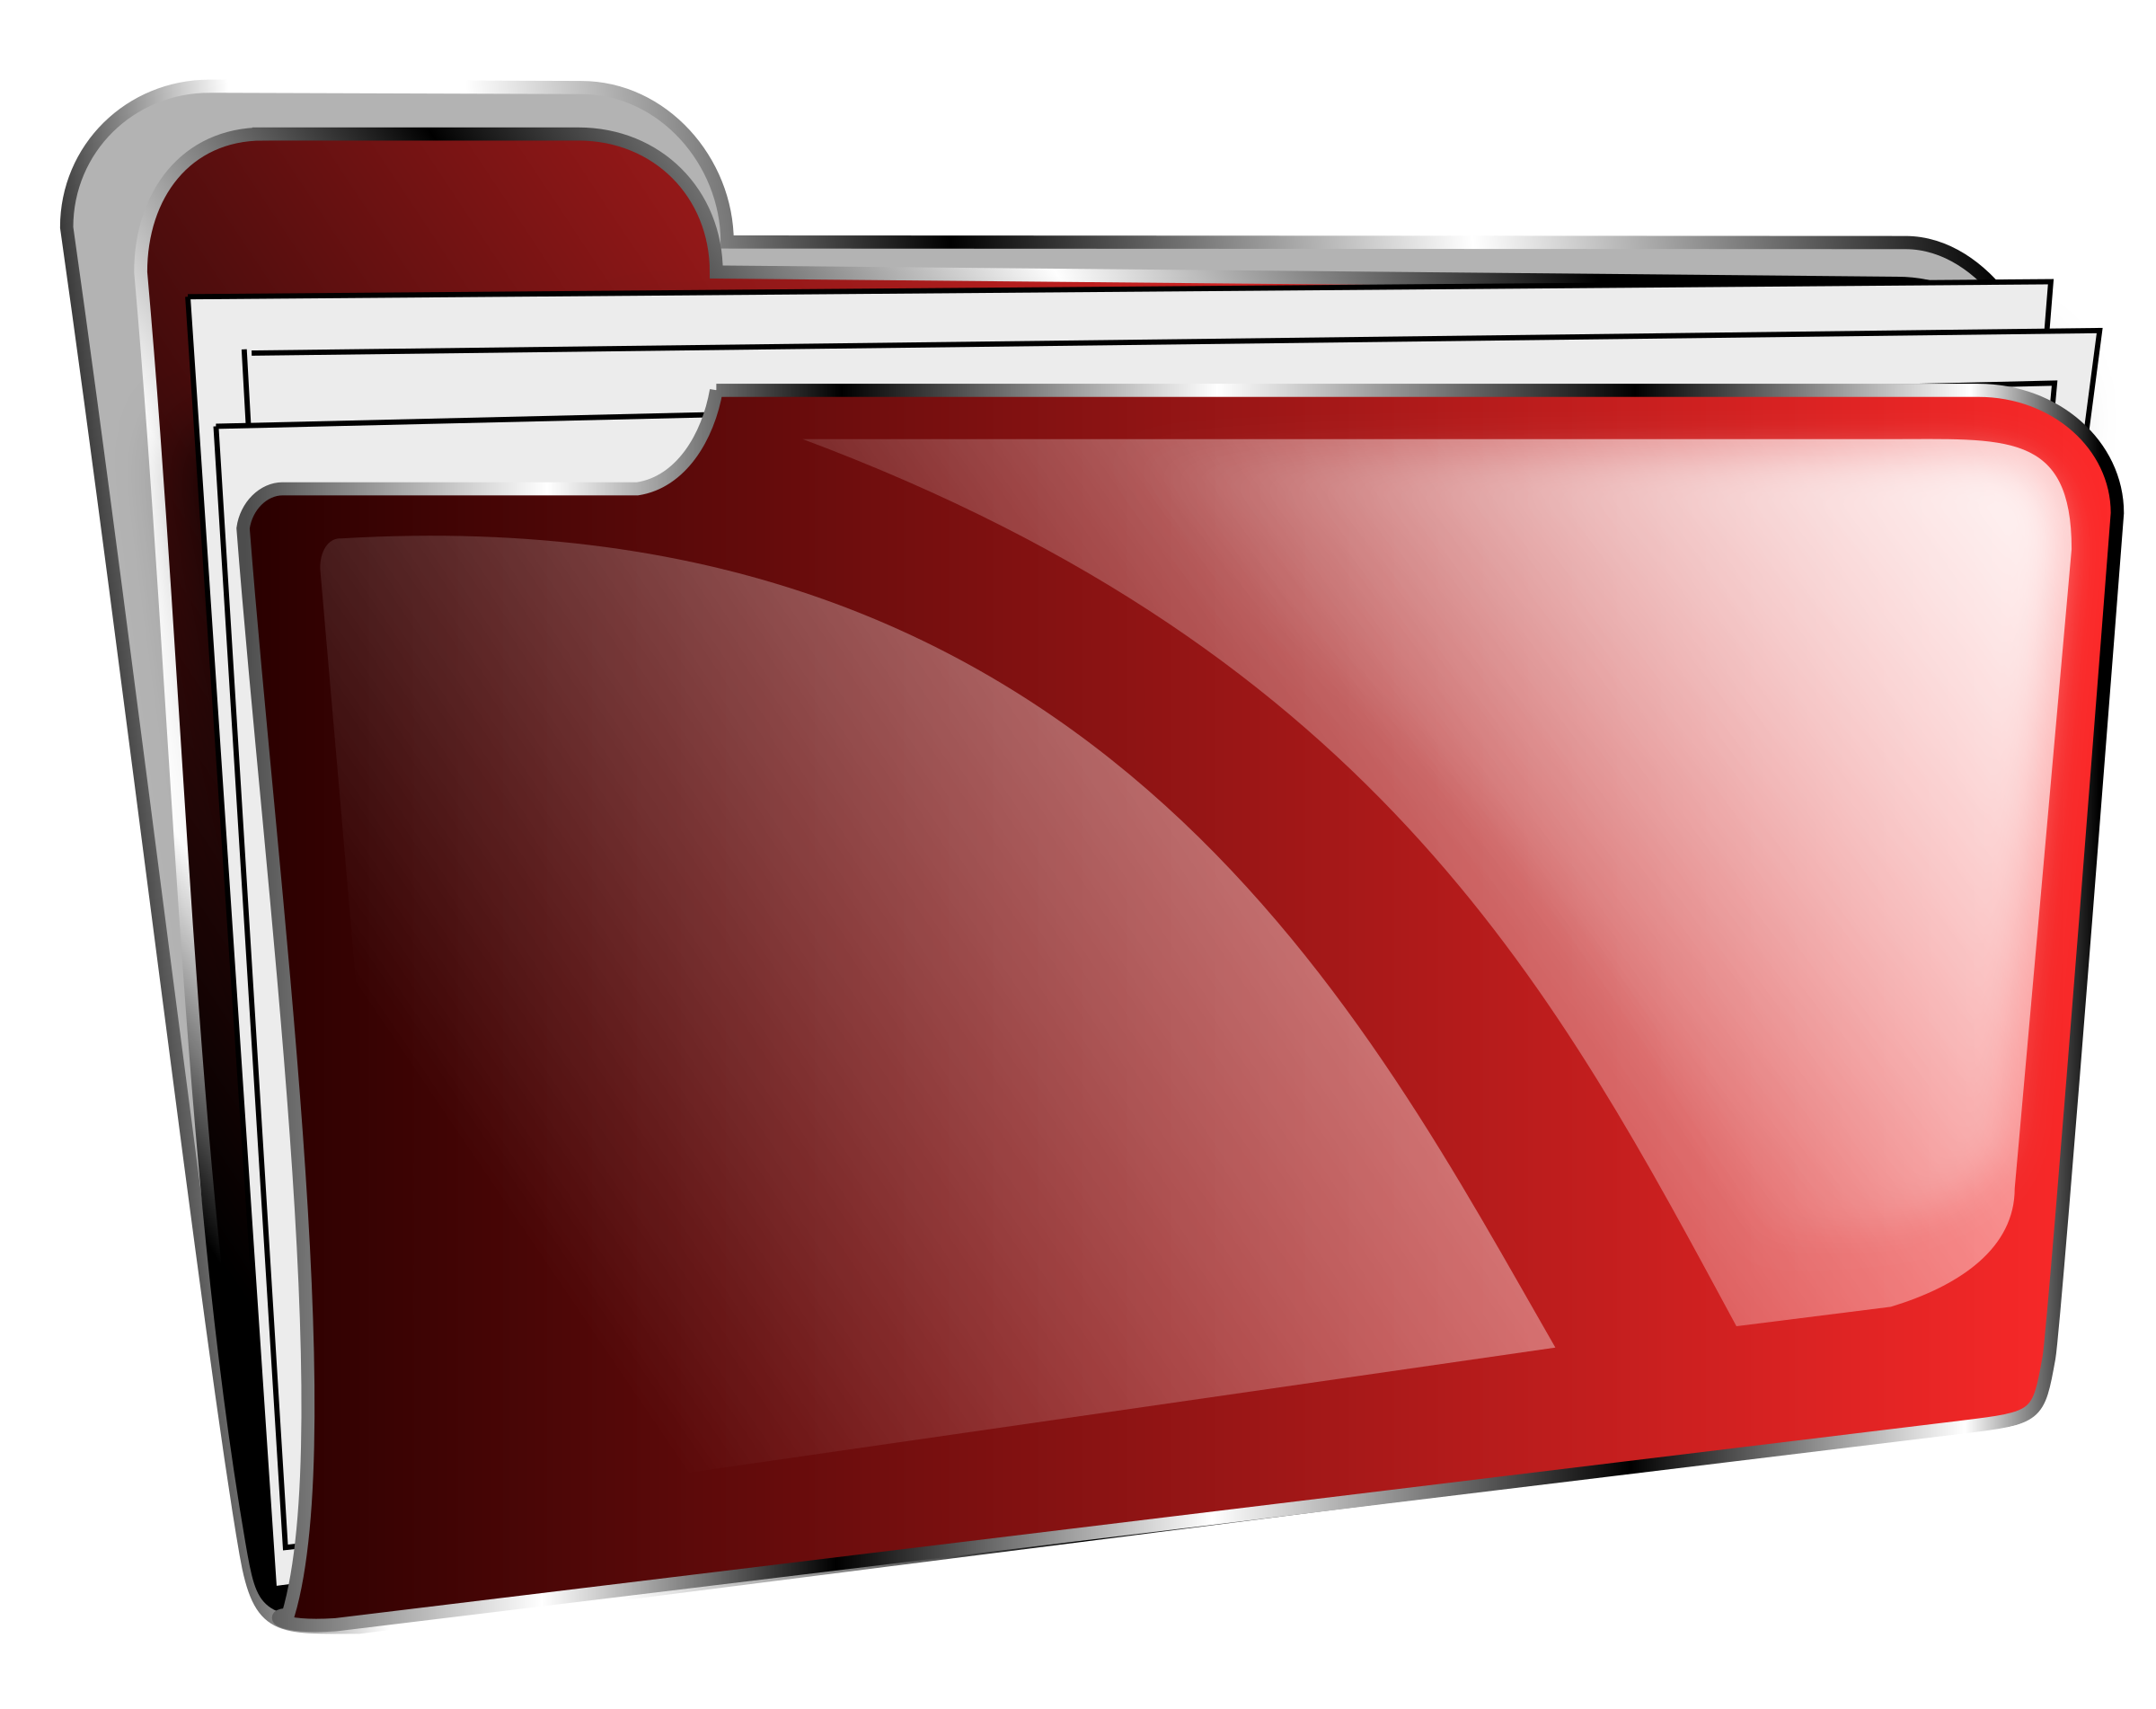 Folder icon red full by roshellin